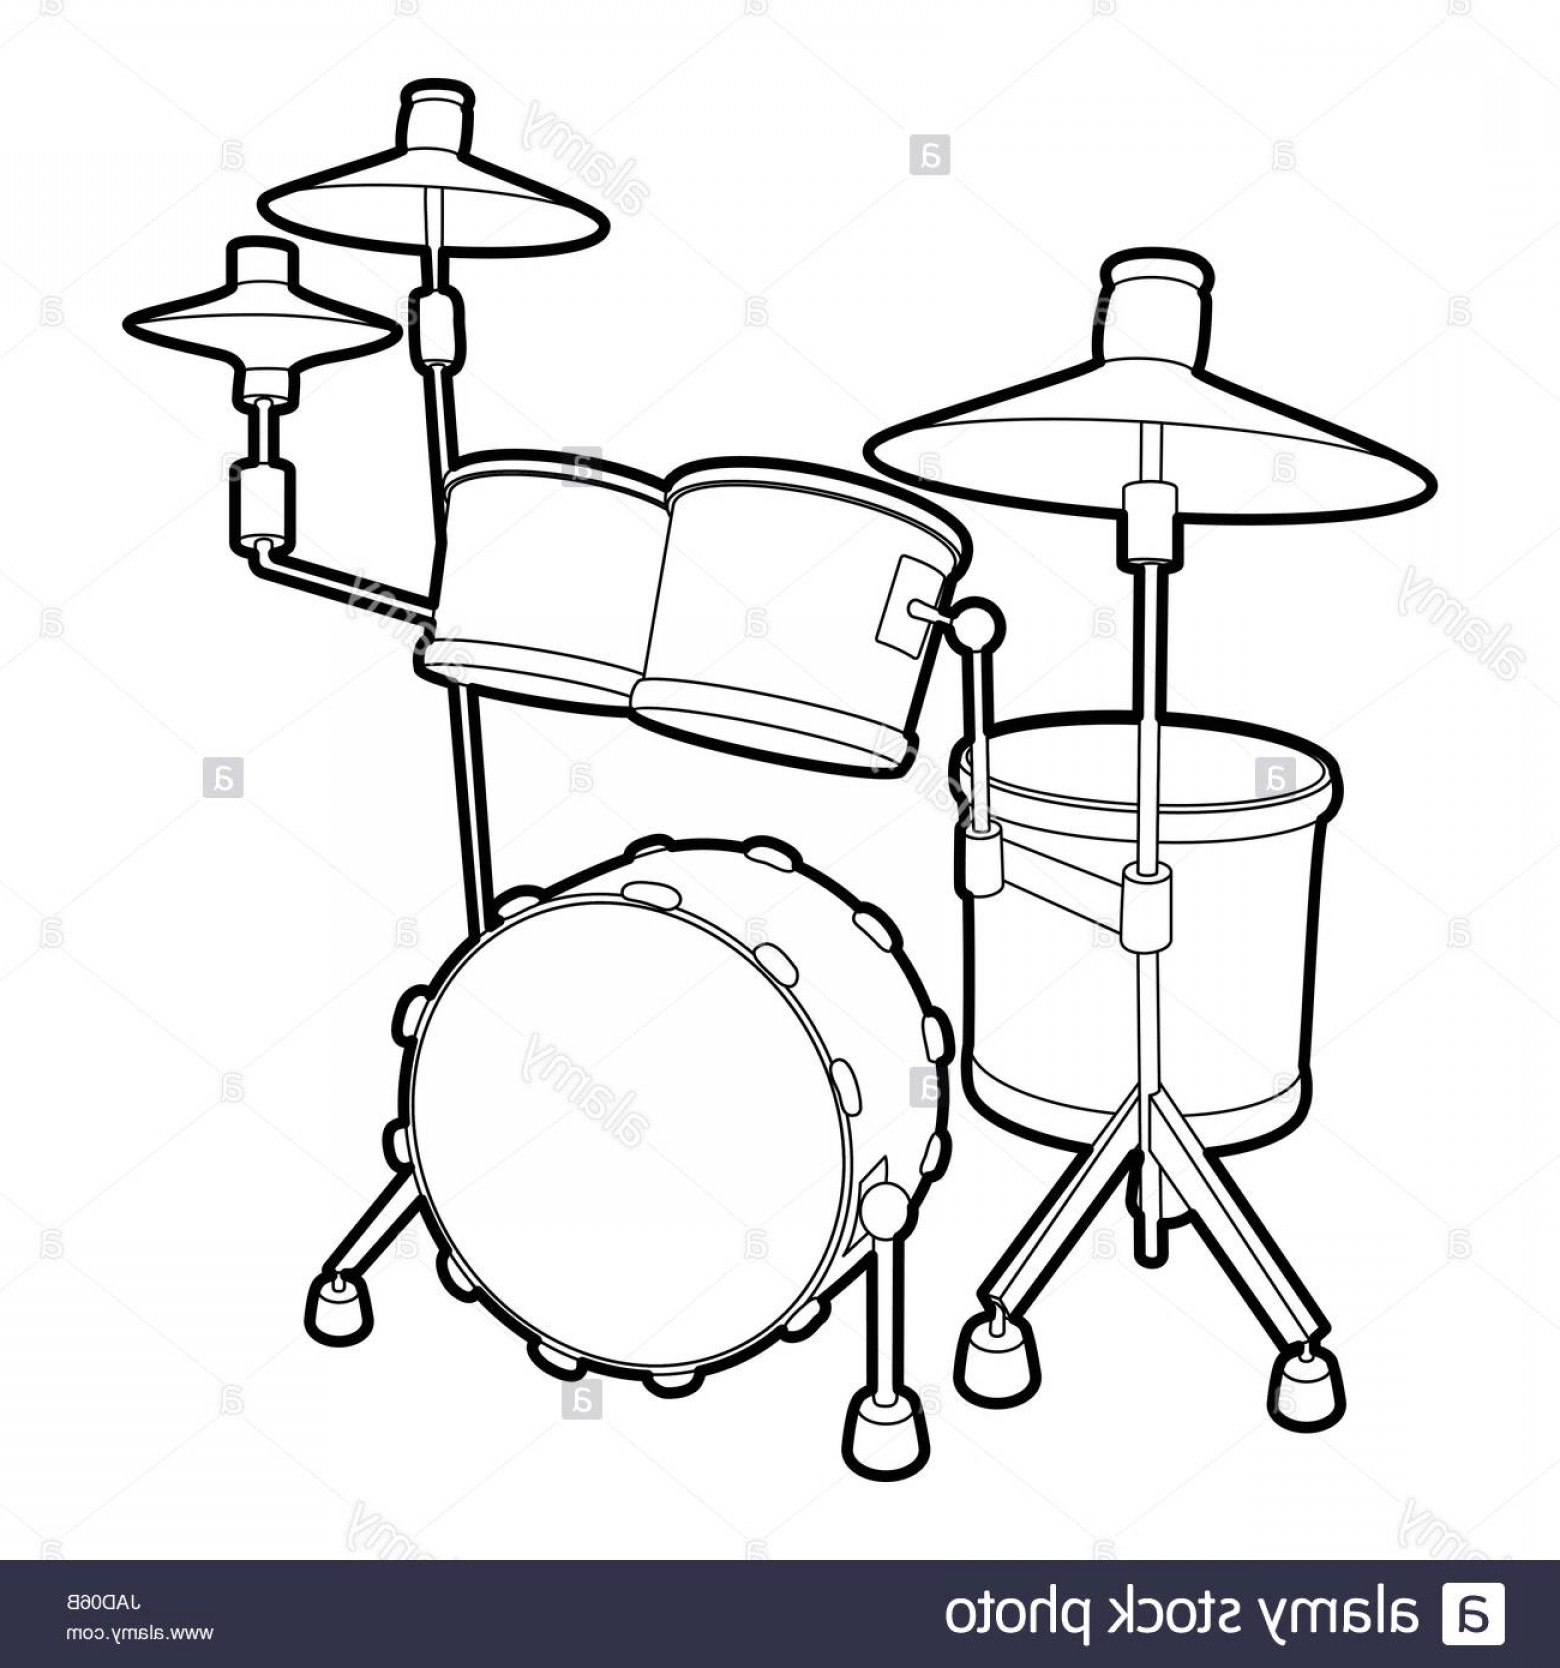 Drum Vector Art: Stock Photo Drum Icon Outline Isometric Illustration Of Drum Vector Icon For Web